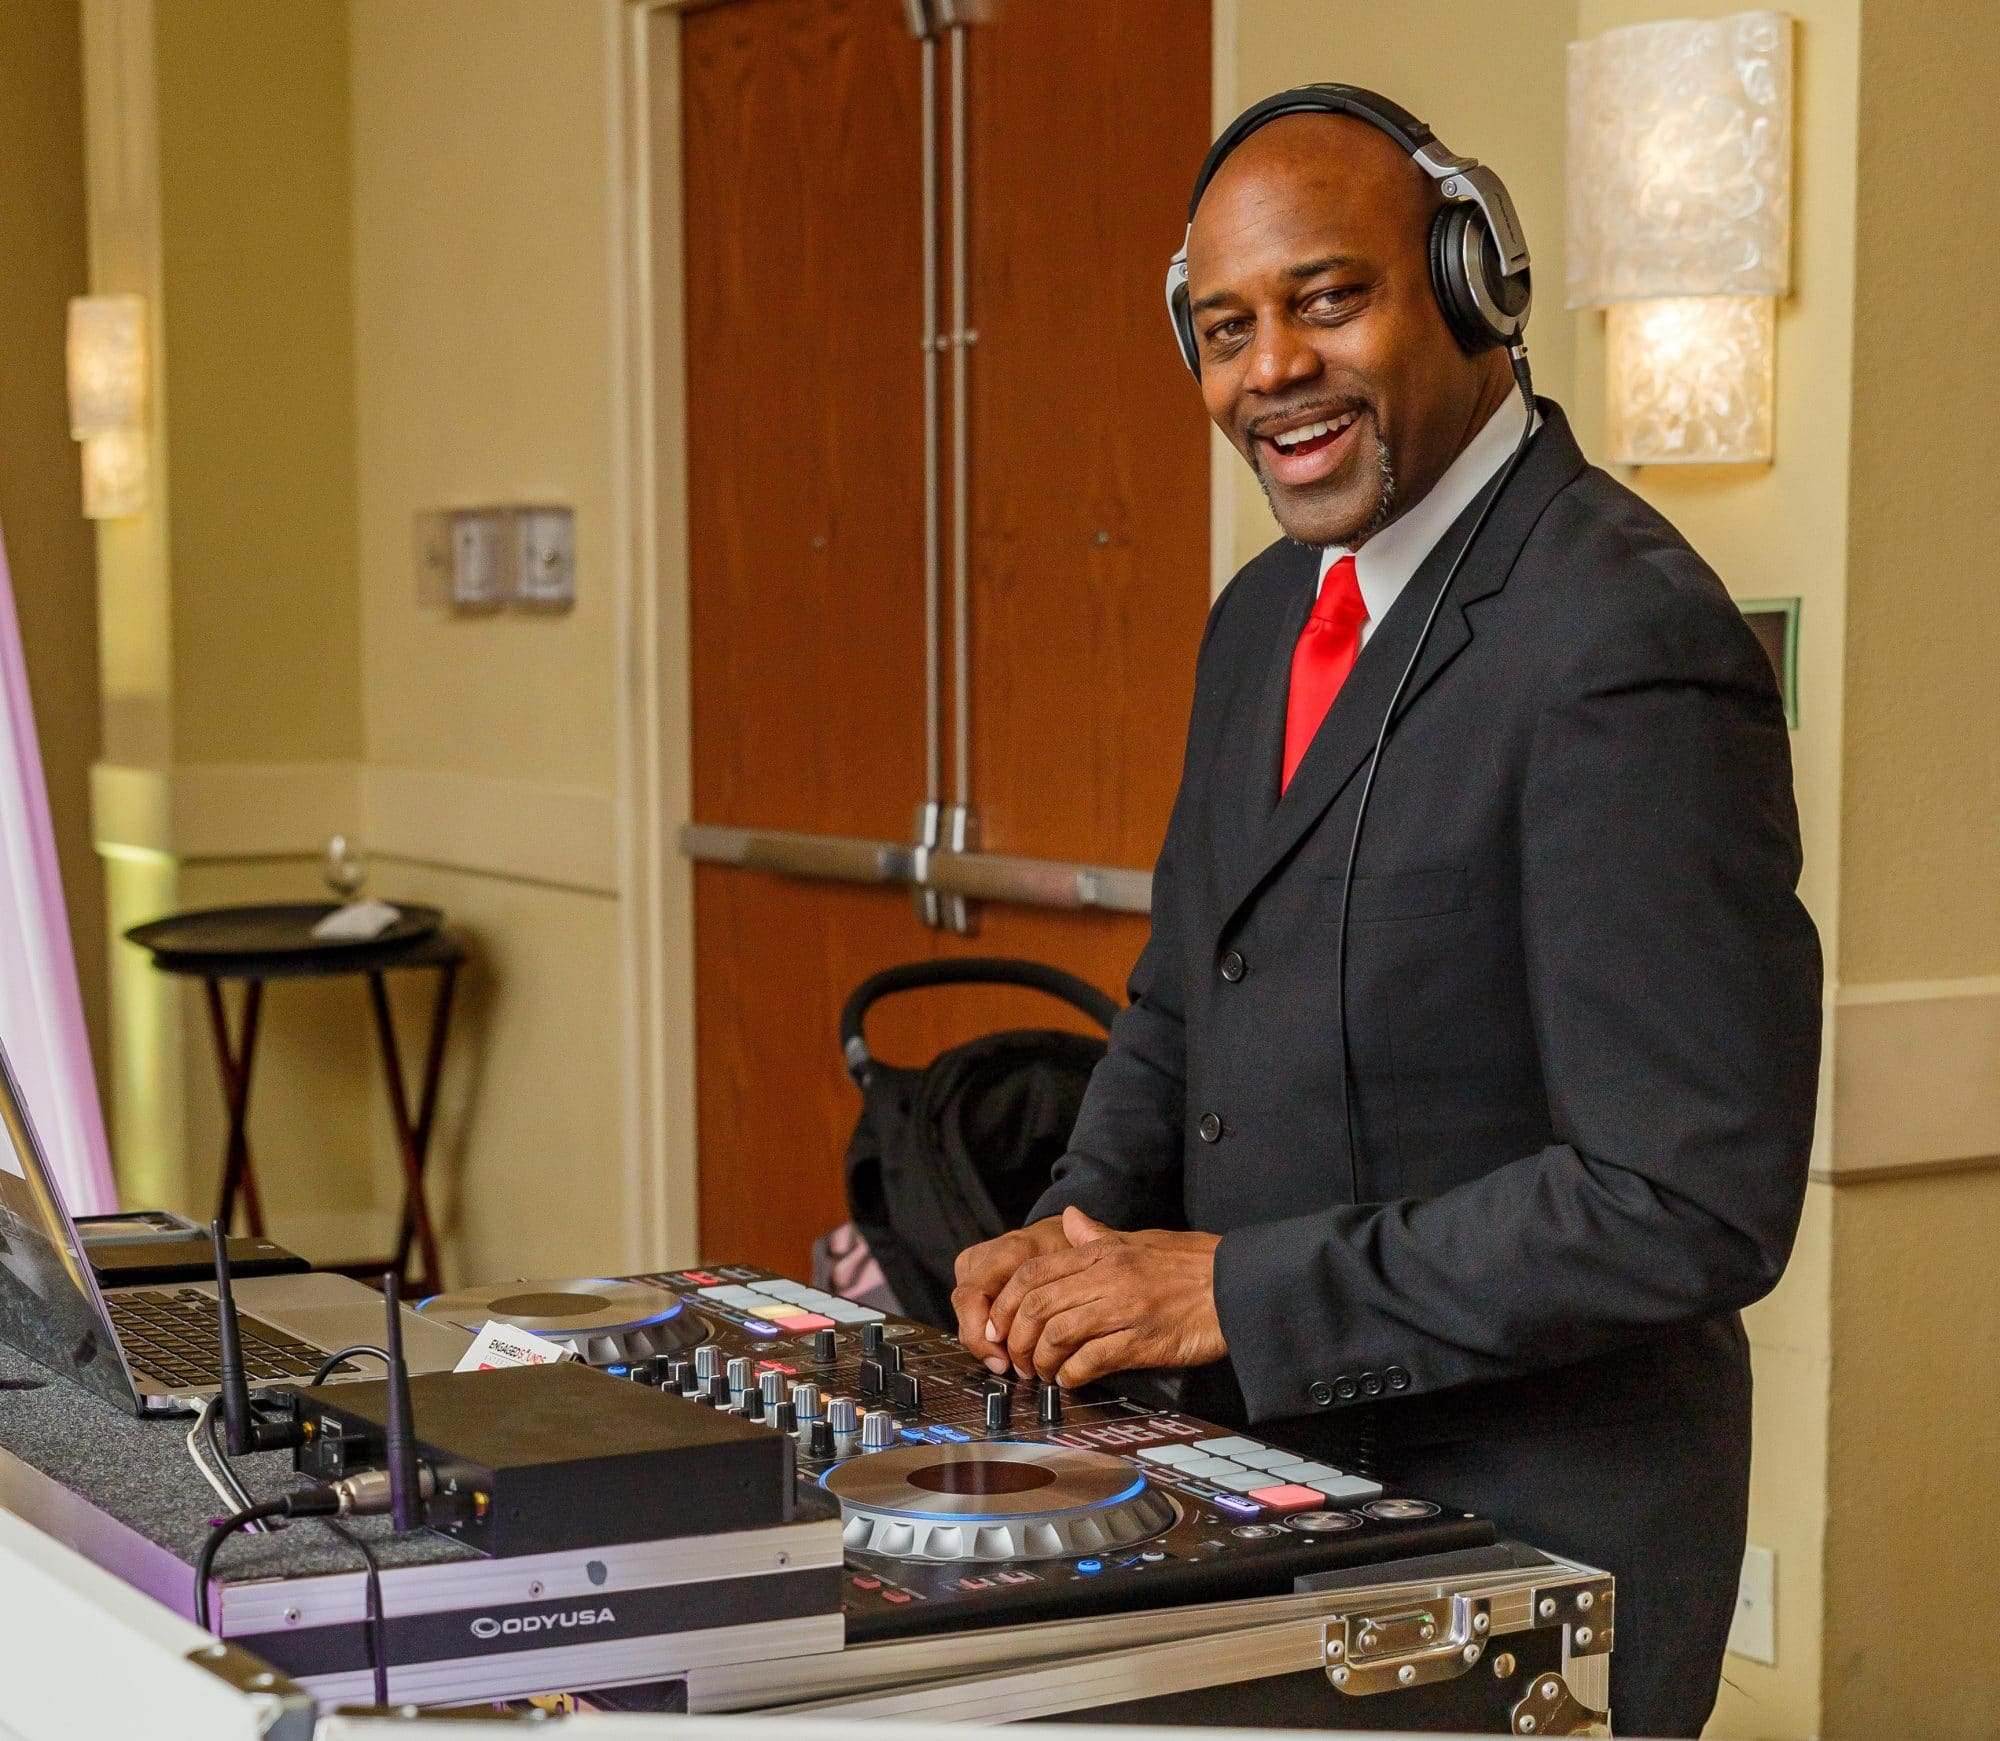 well-dressed DJ behind sound equipment